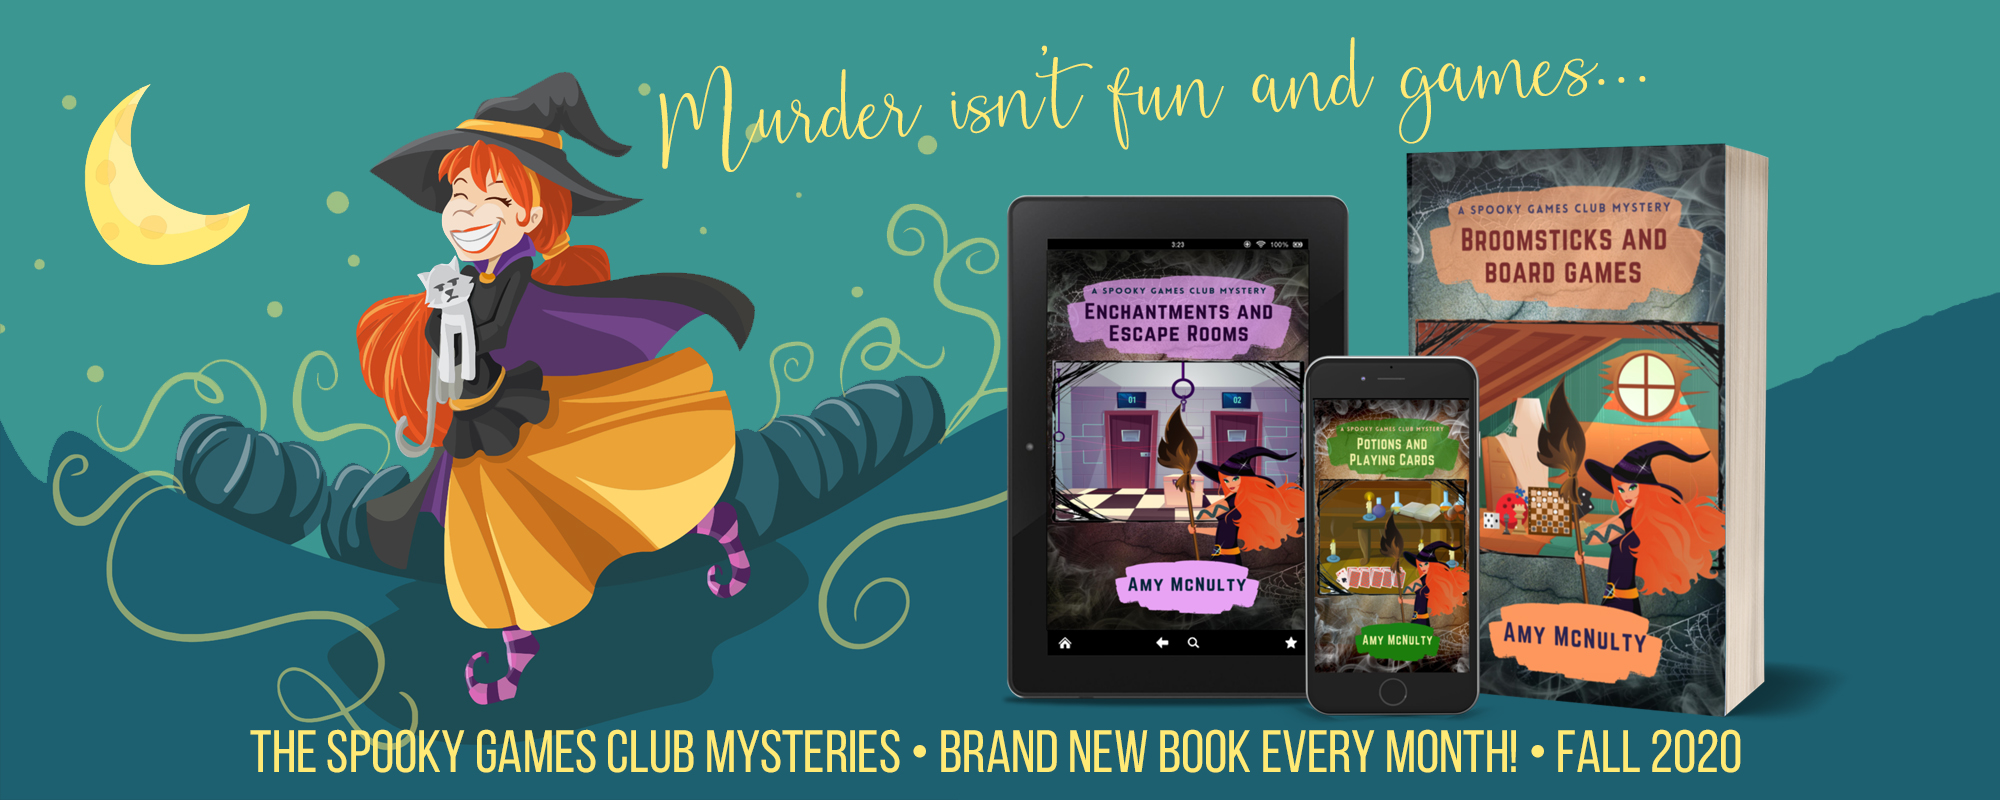 The Spooky Games Club Mysteries by Amy McNulty, releasing monthly through November